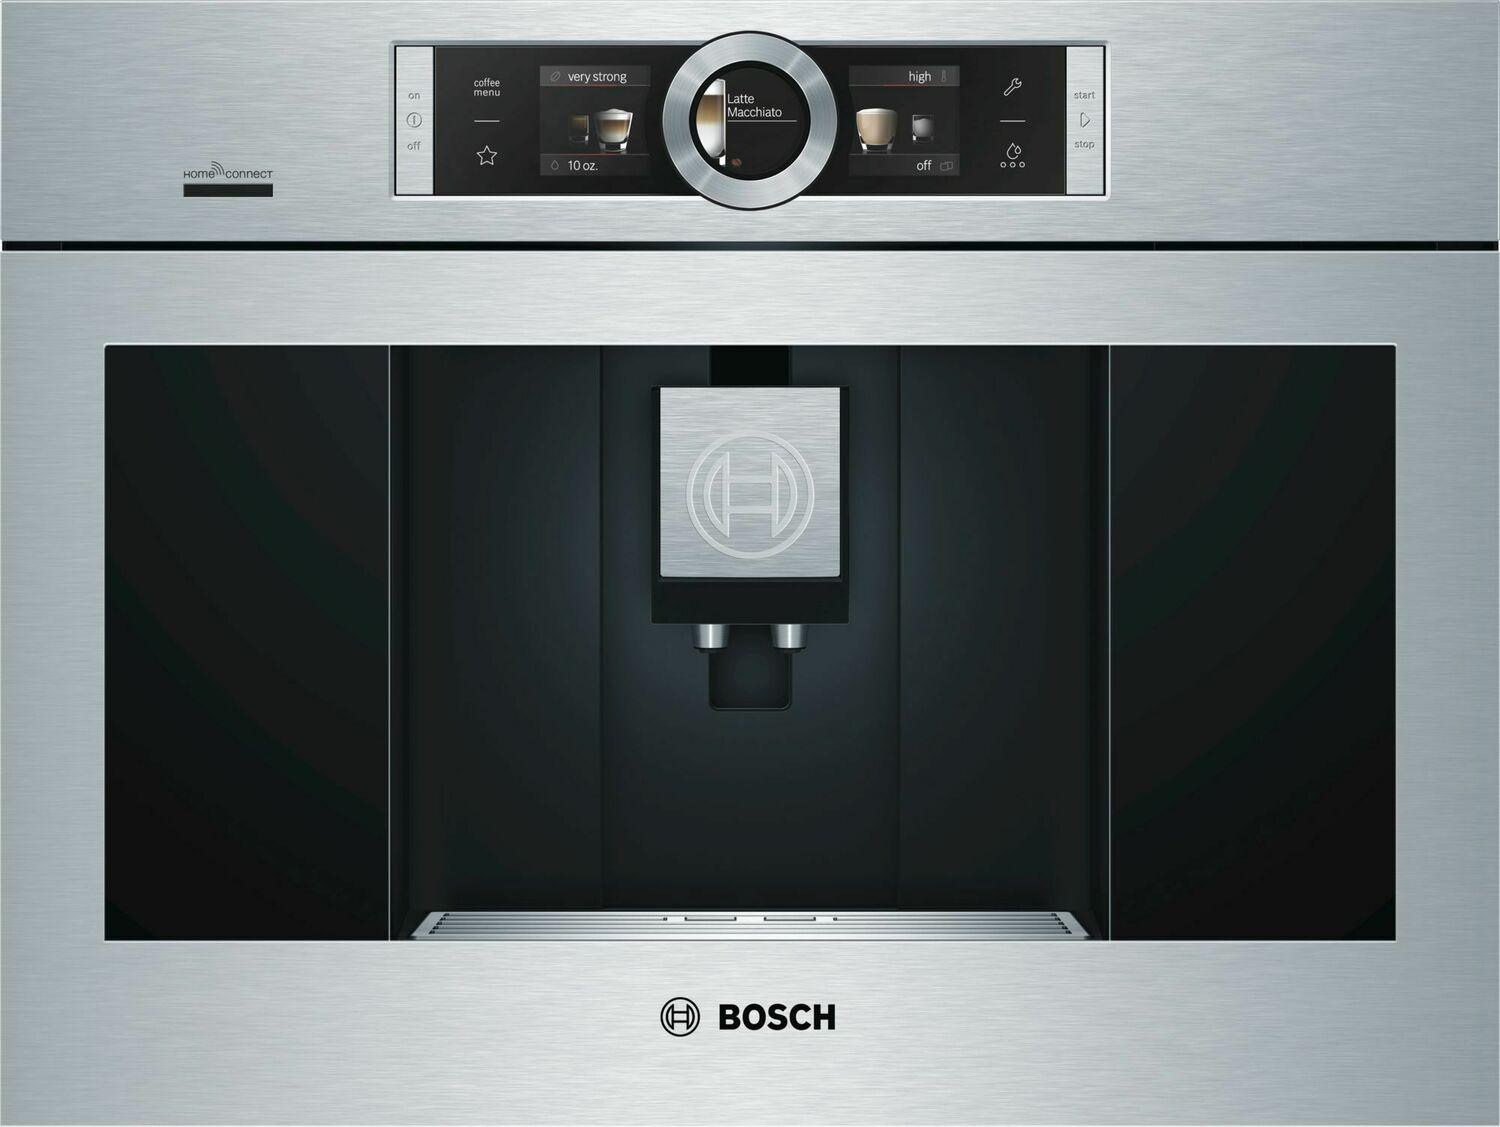 Bosch Small Appliances